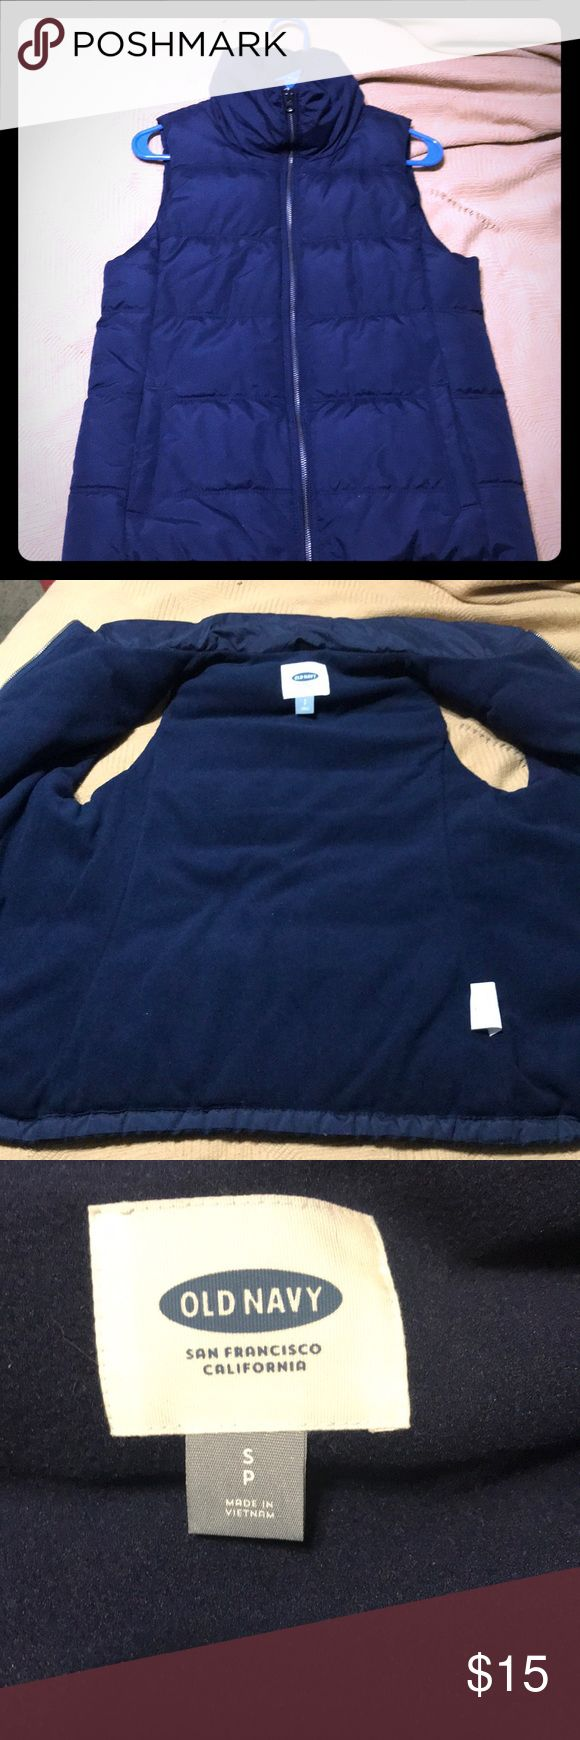 Navy old navy vest Almost new old navy navy vest. Only wore once. Offers accepted. No trades Old Navy Jackets & Coats Vests